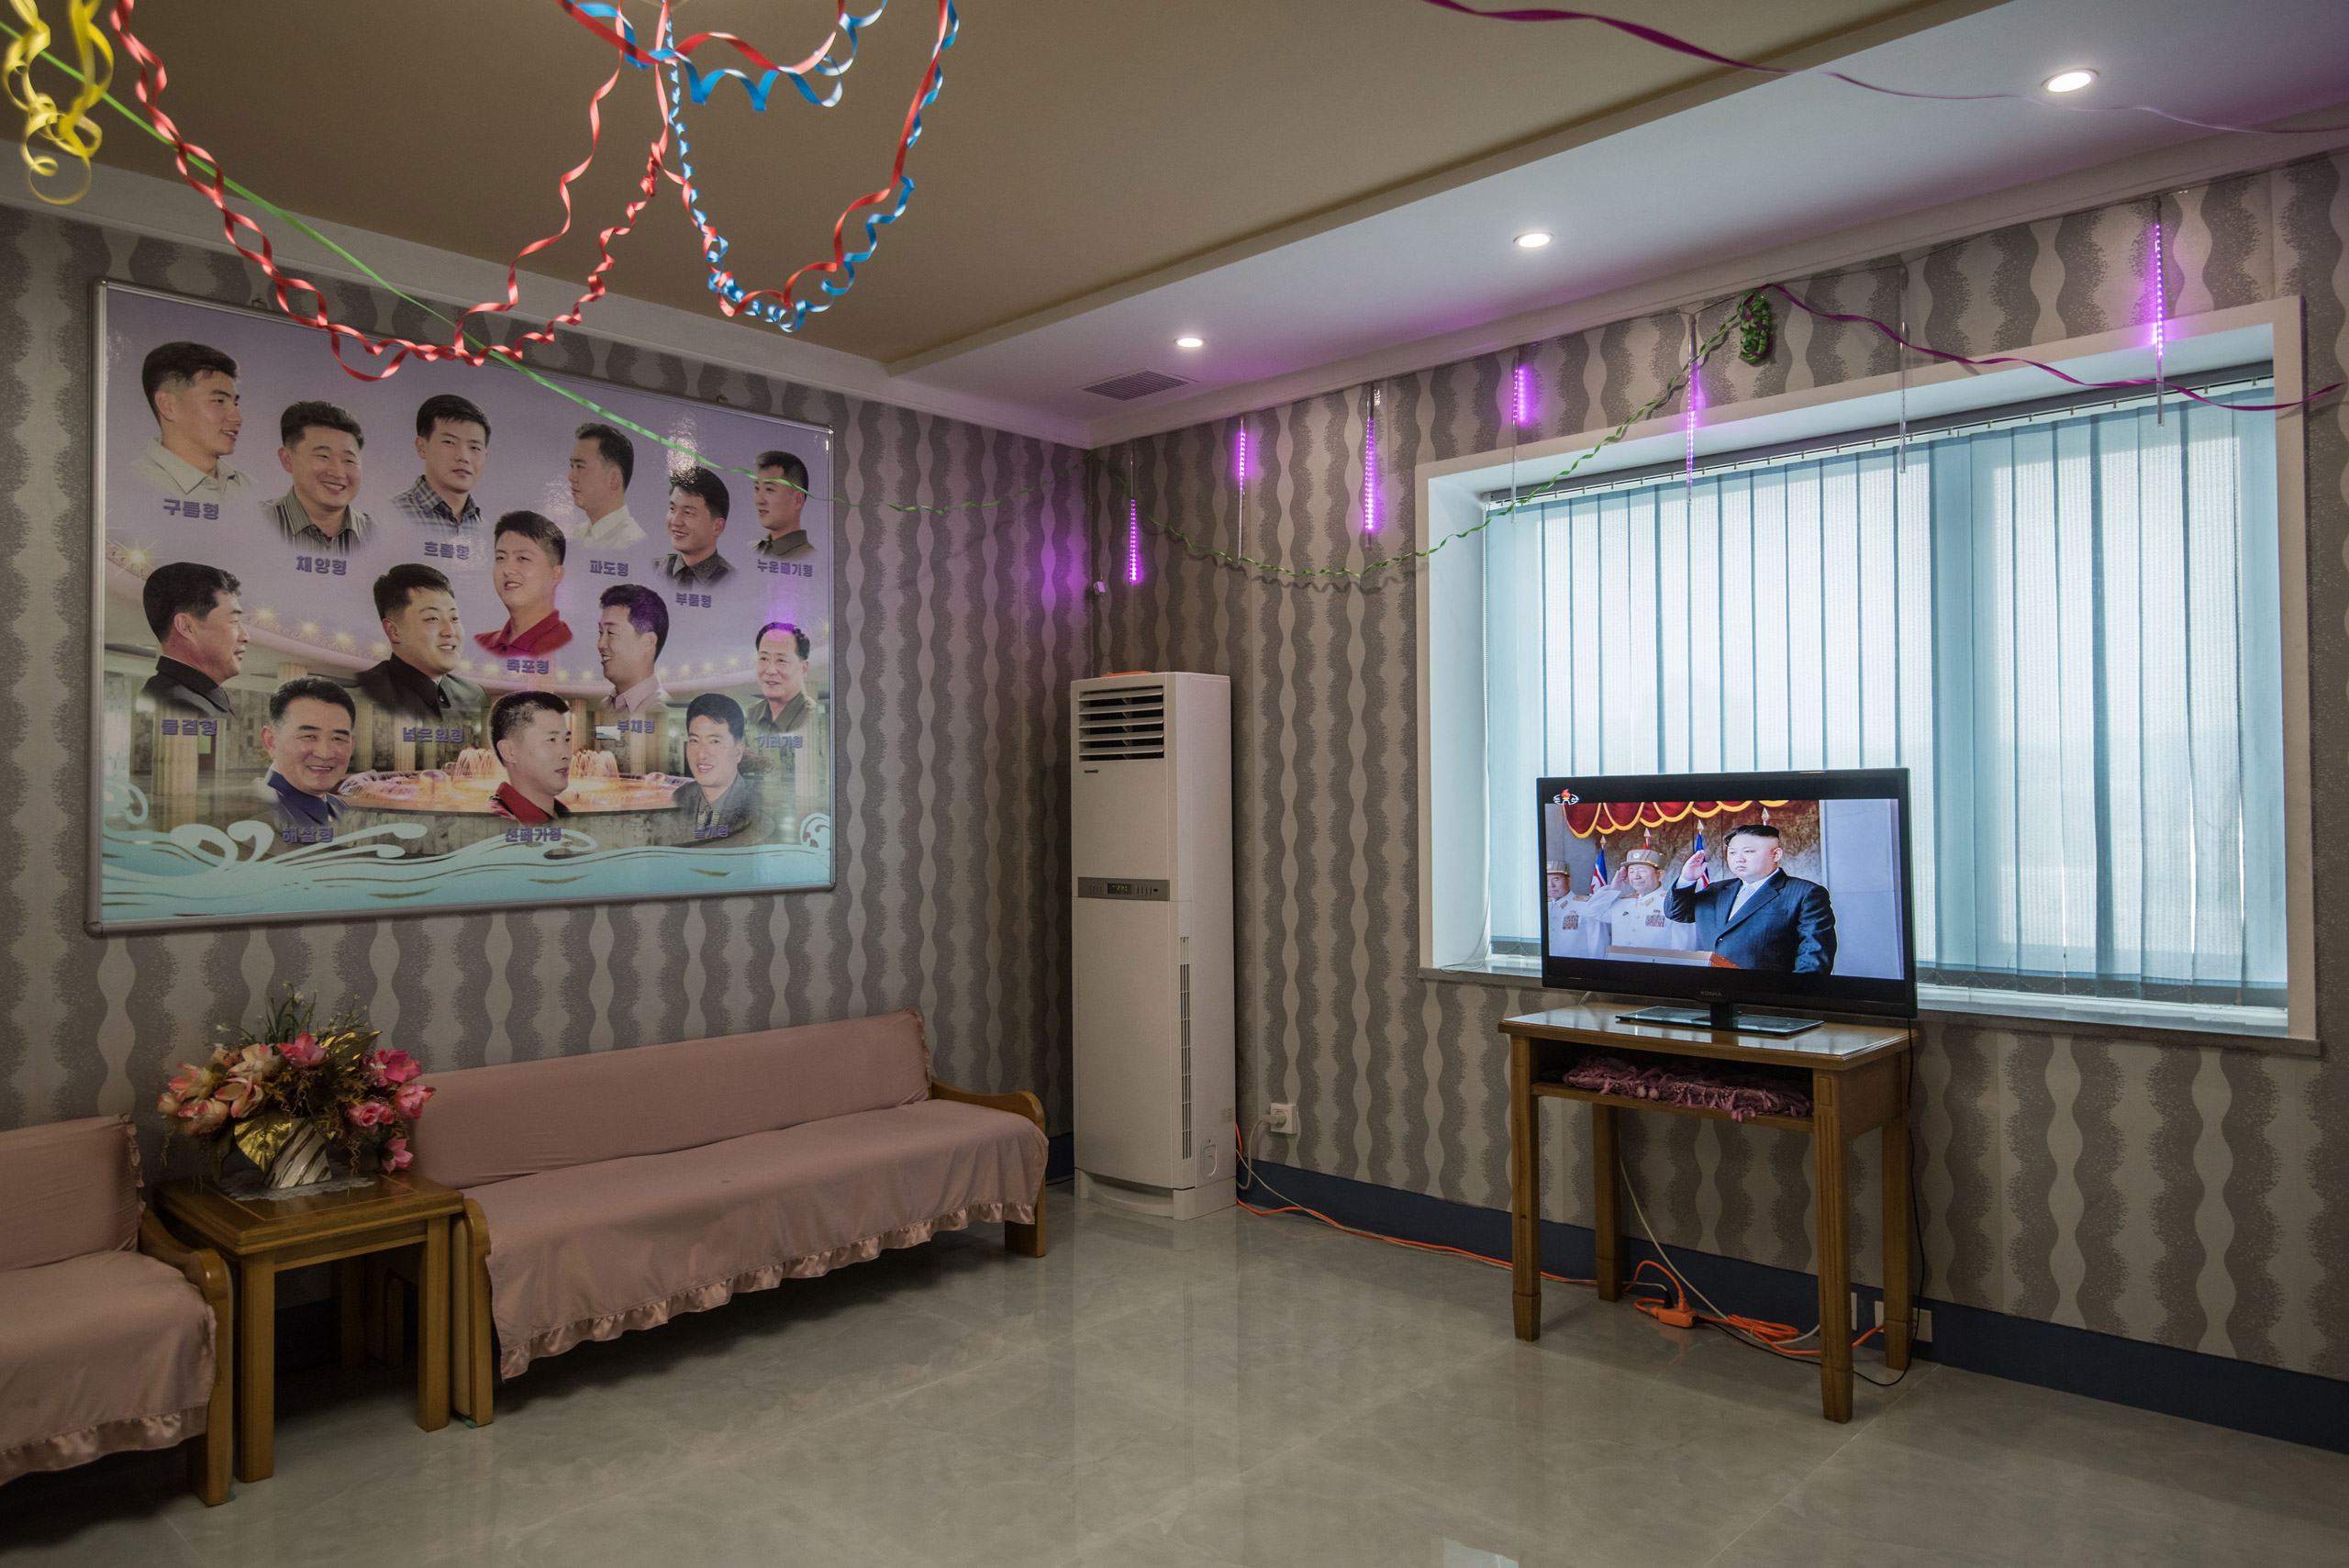 A television shows footage of North Korean leader Kim Jong-Un during a military parade at a barber shop inside a leisure centre during an organised tour for visiting foreign journalists, in Pyongyang on April 16, 2017.